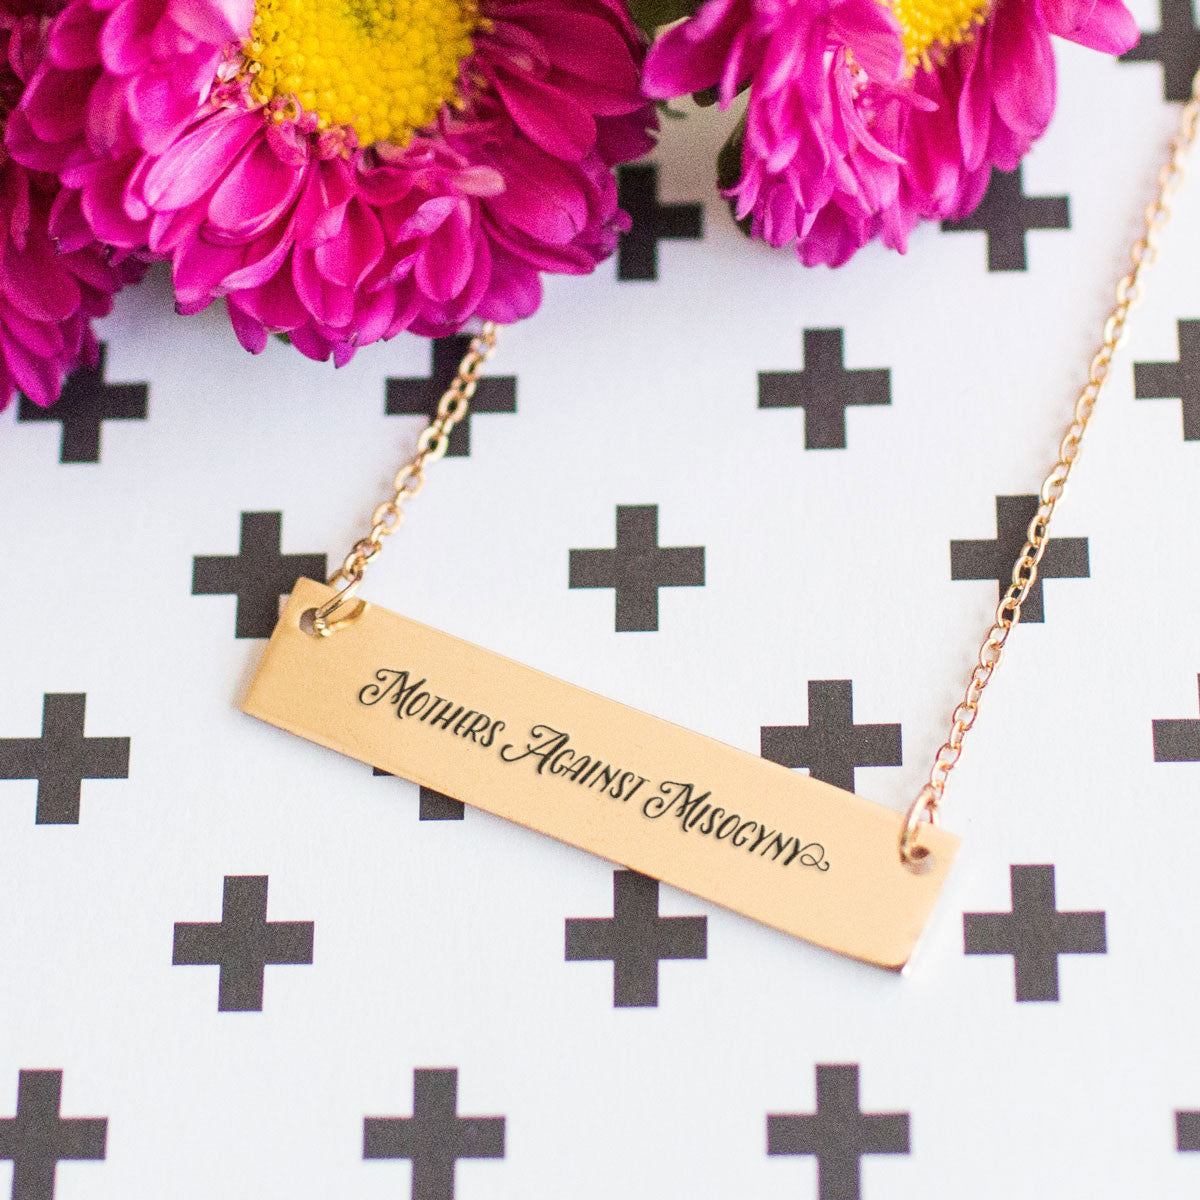 Mothers Against Misogyny Gold / Silver Bar Necklace